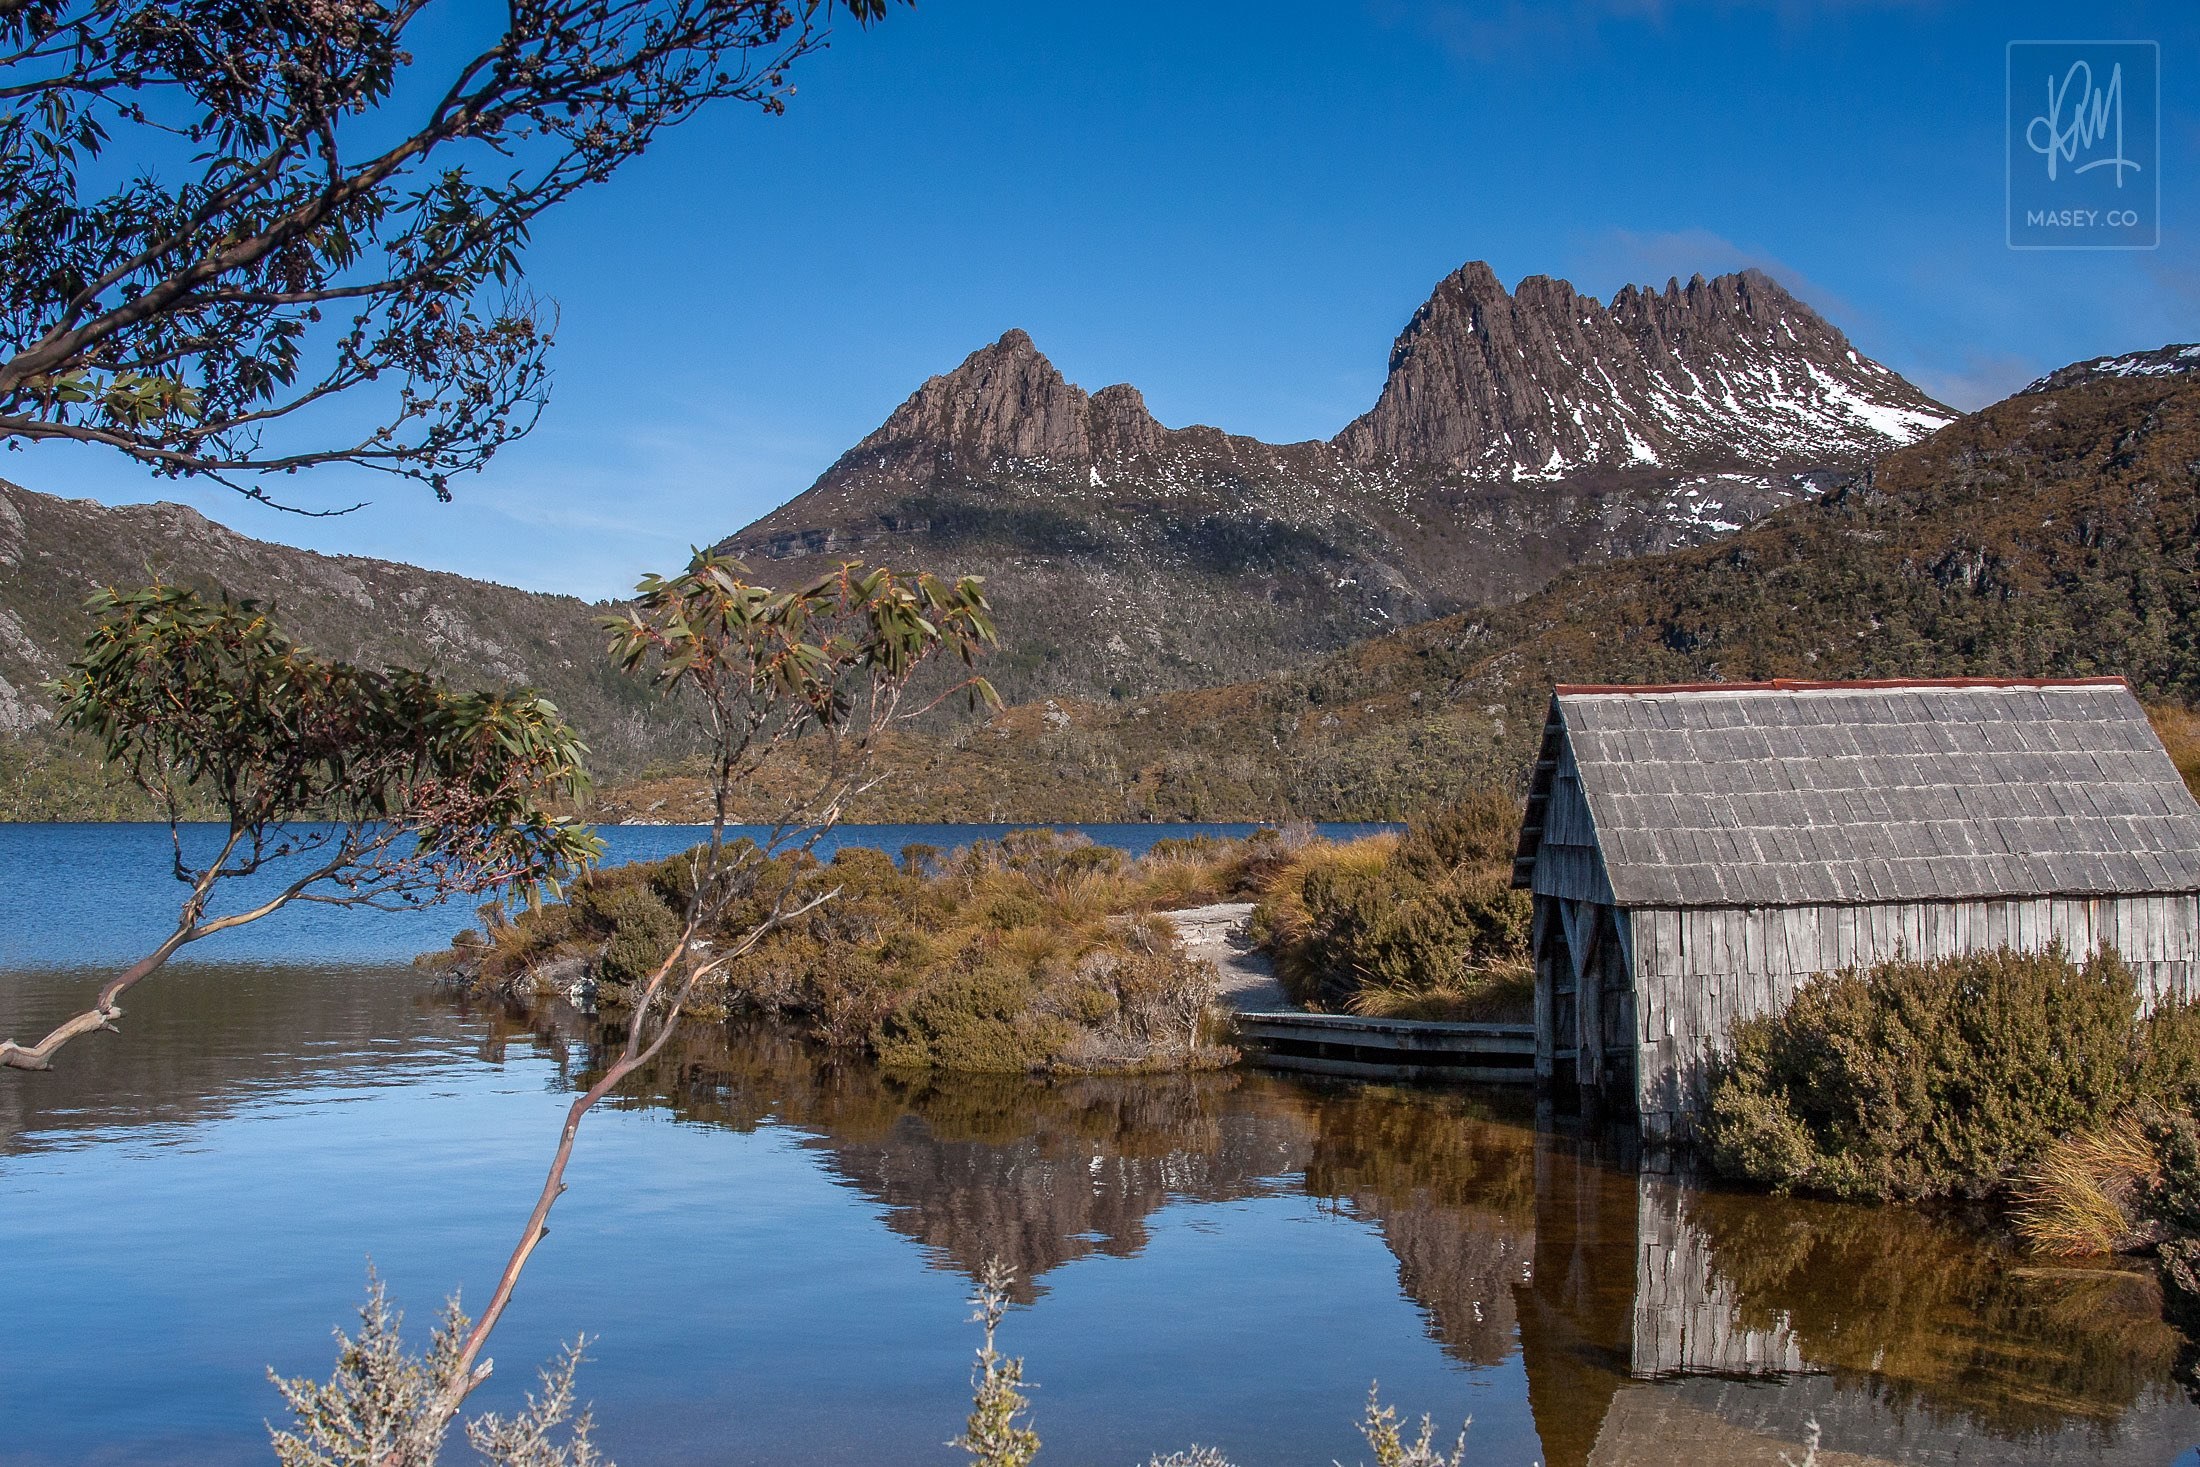 The iconic Dove Lake Boatshed